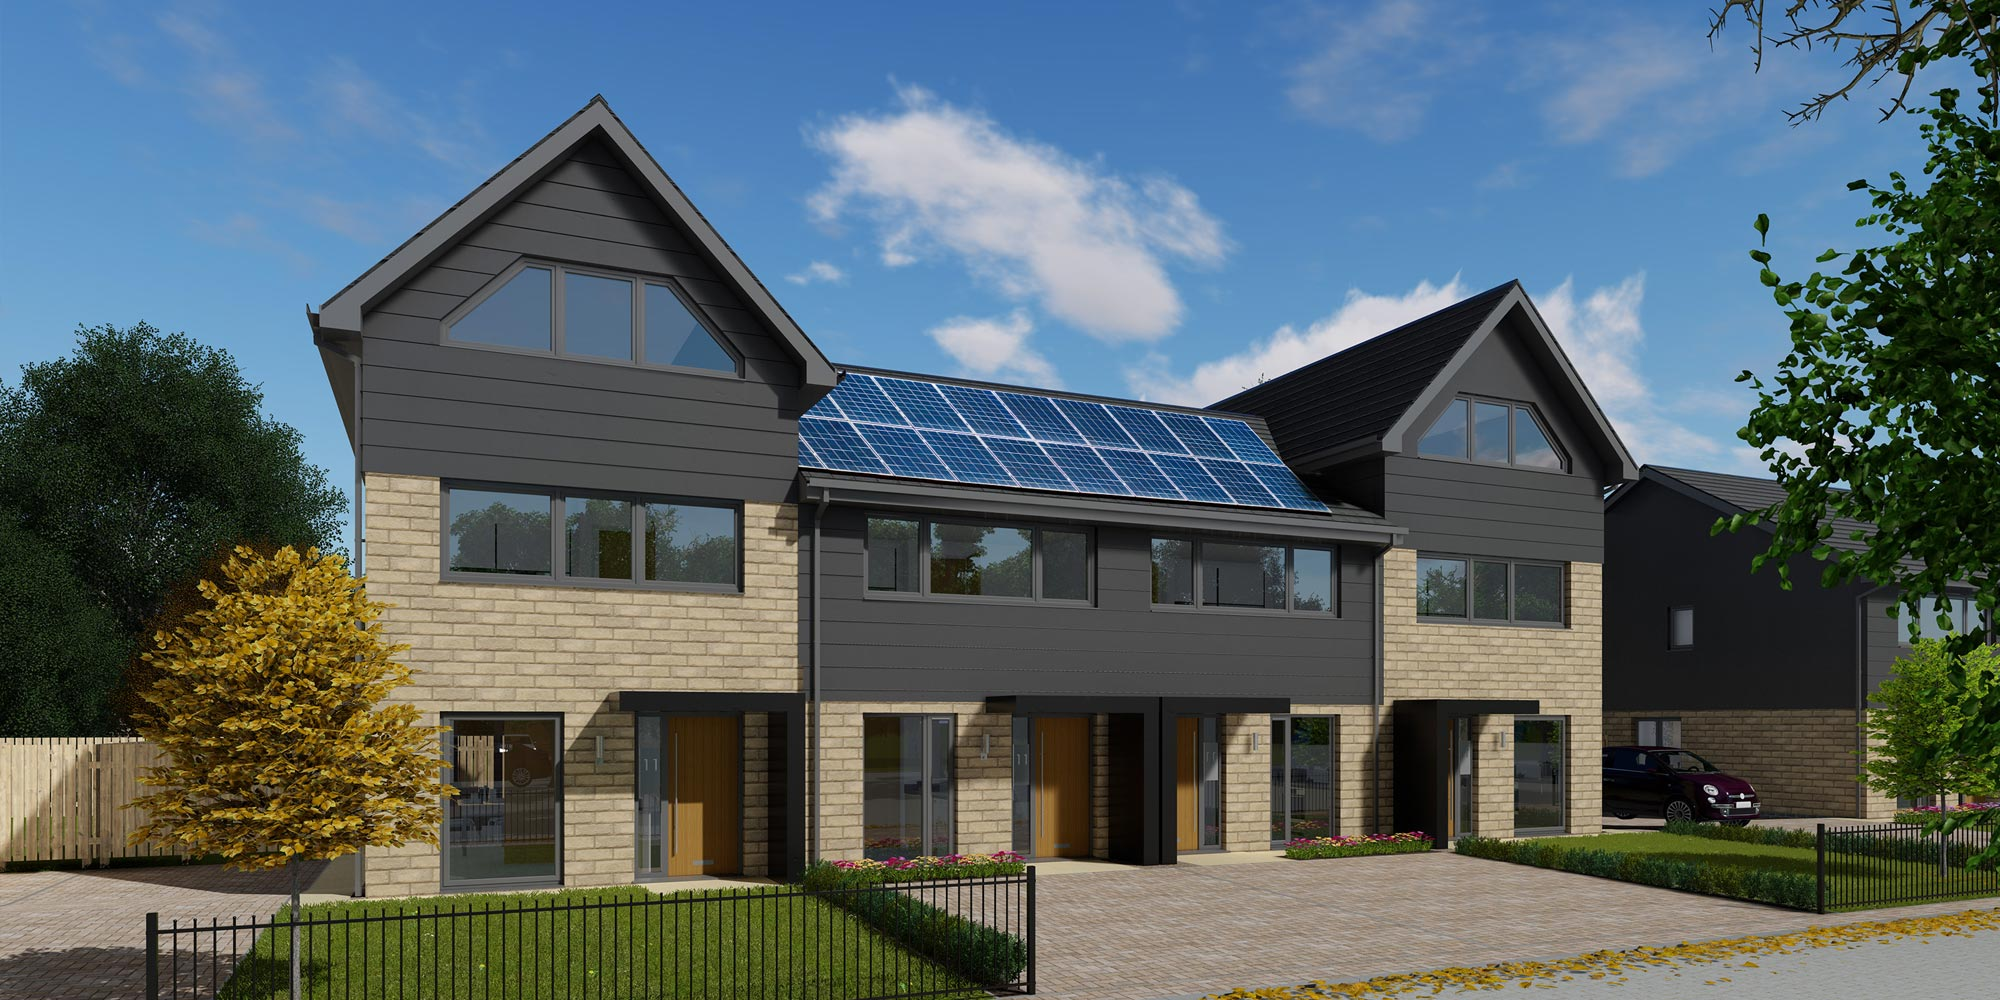 Low Carbon Modular Housing Solutions for the UK Housing Crisis – APSE article